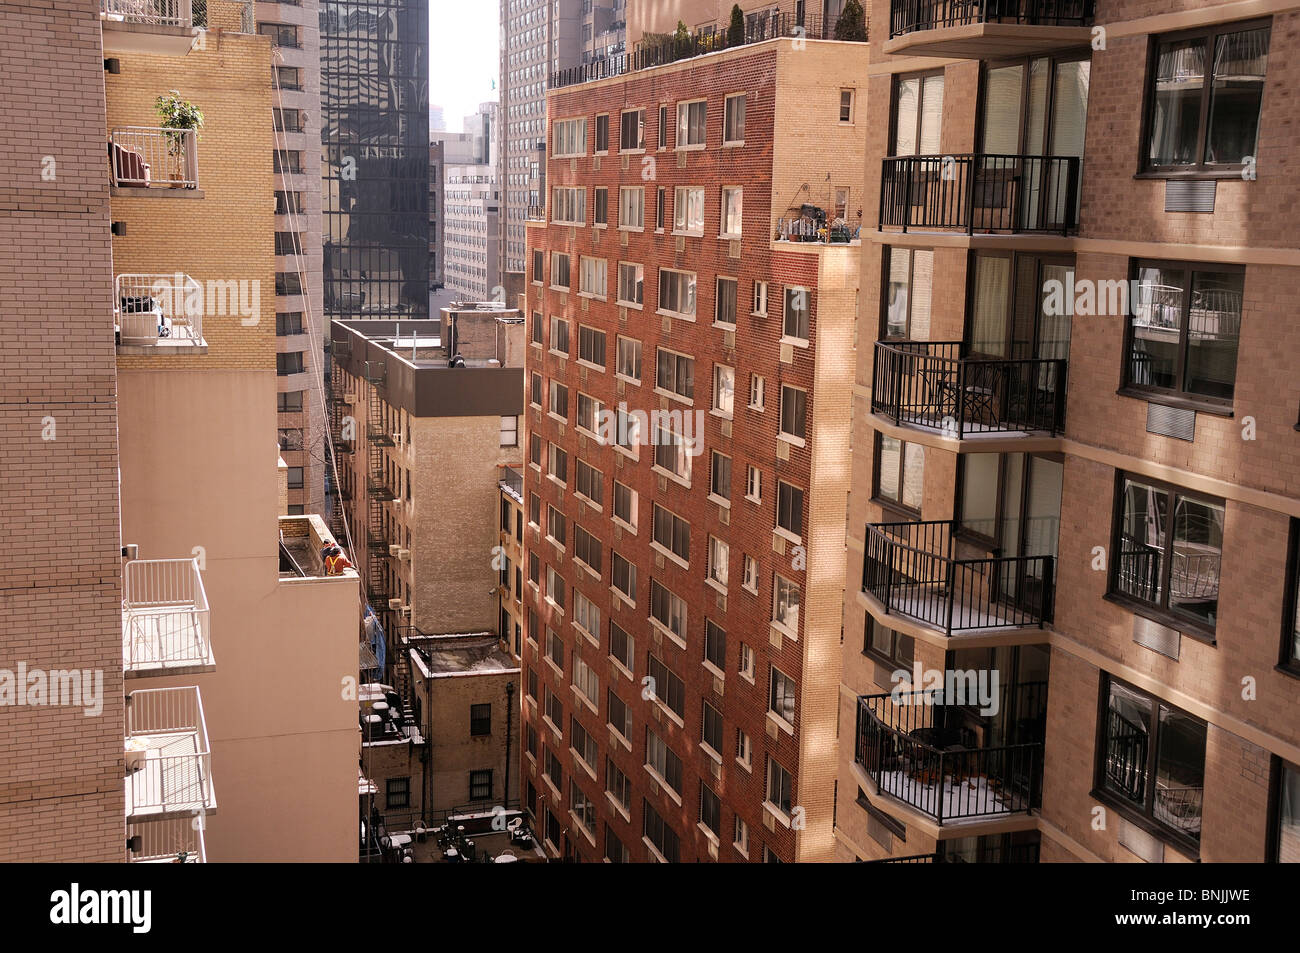 46th Street view buildings Manhattan New York USA apartments city